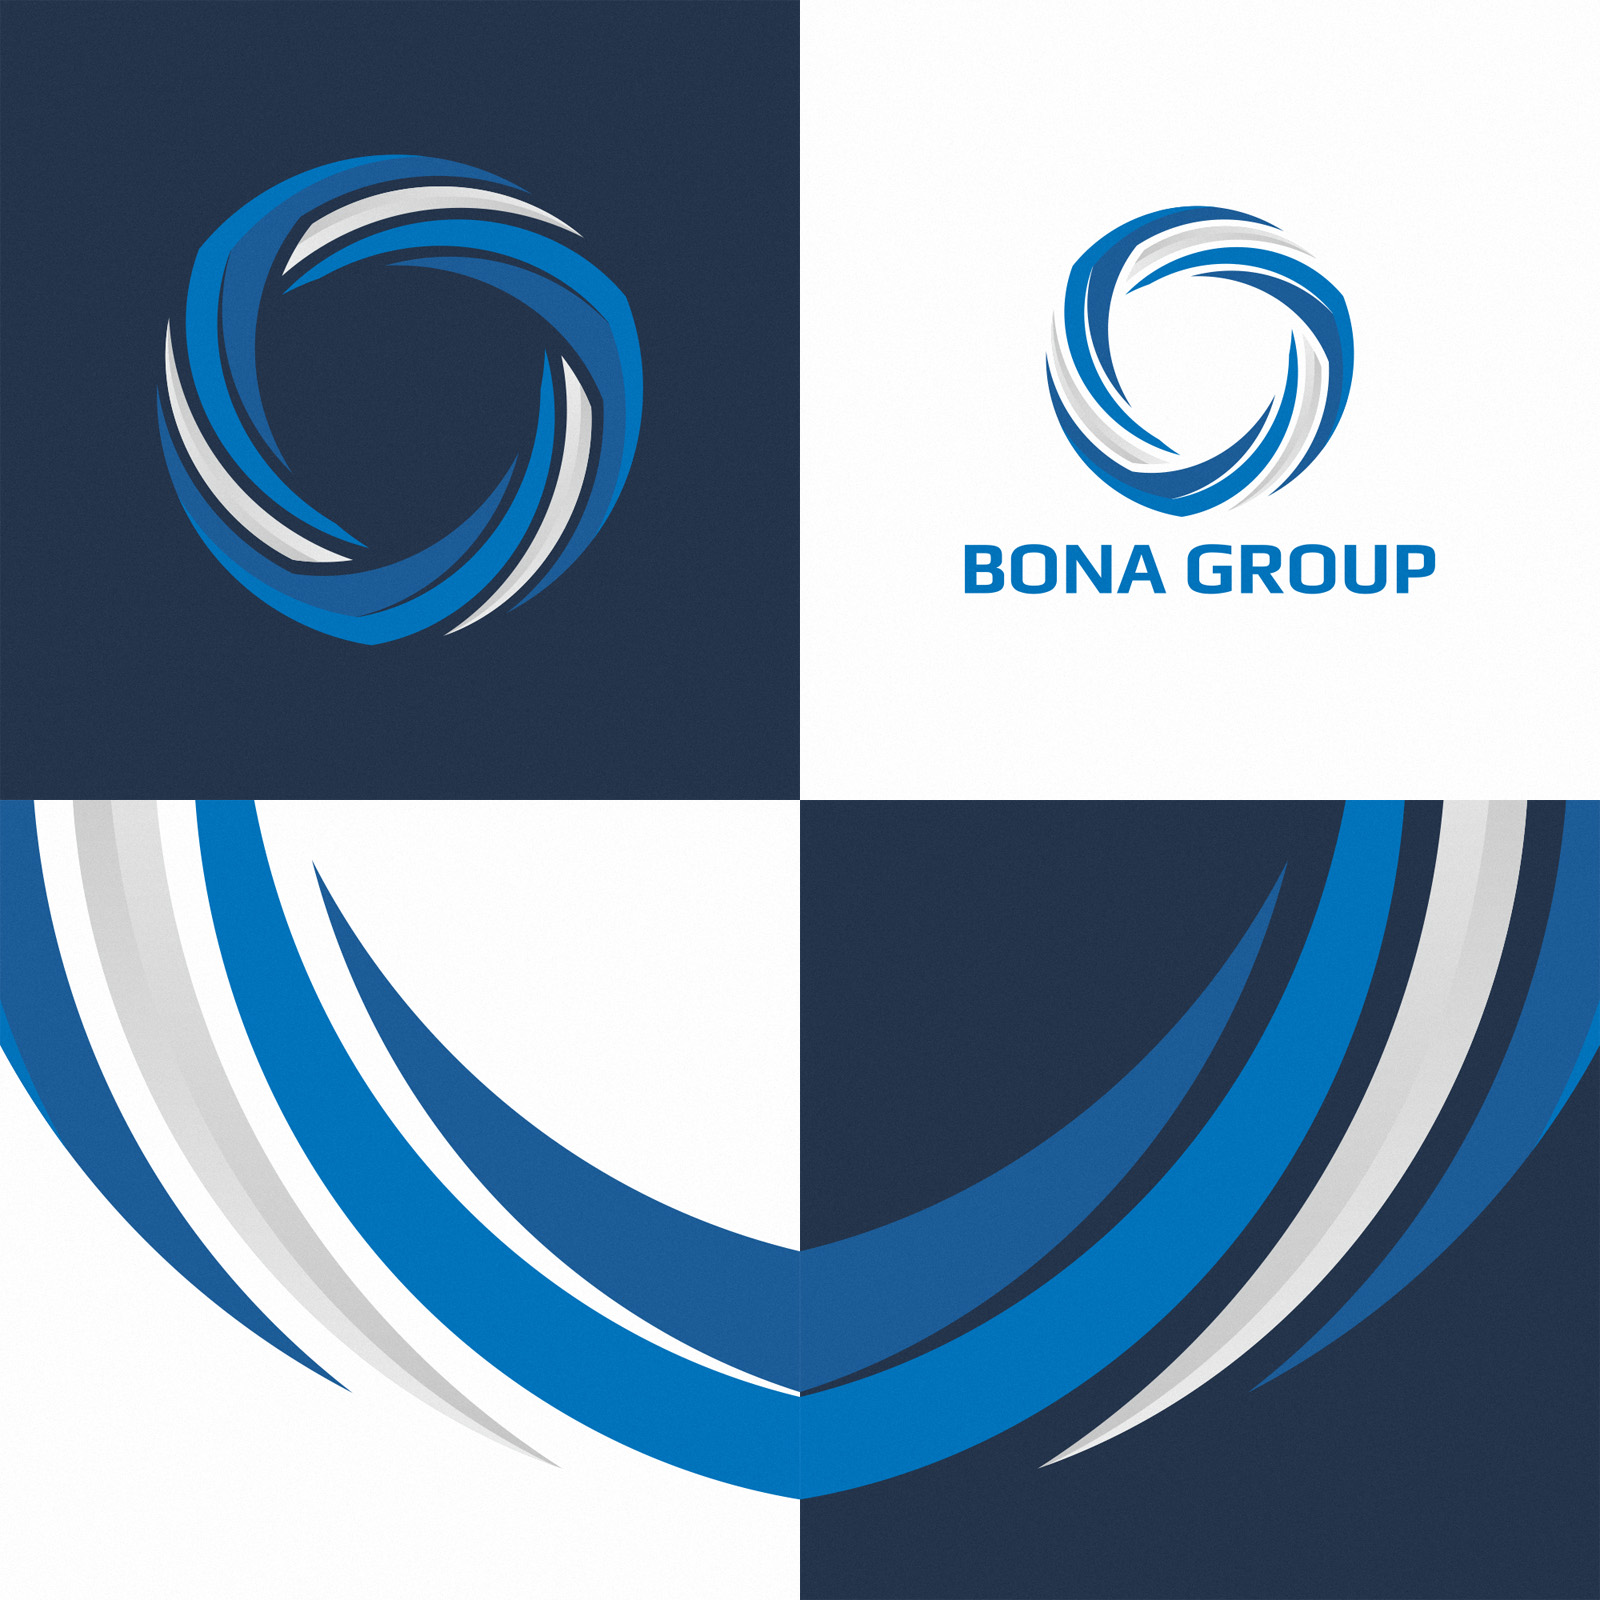 Bona Group